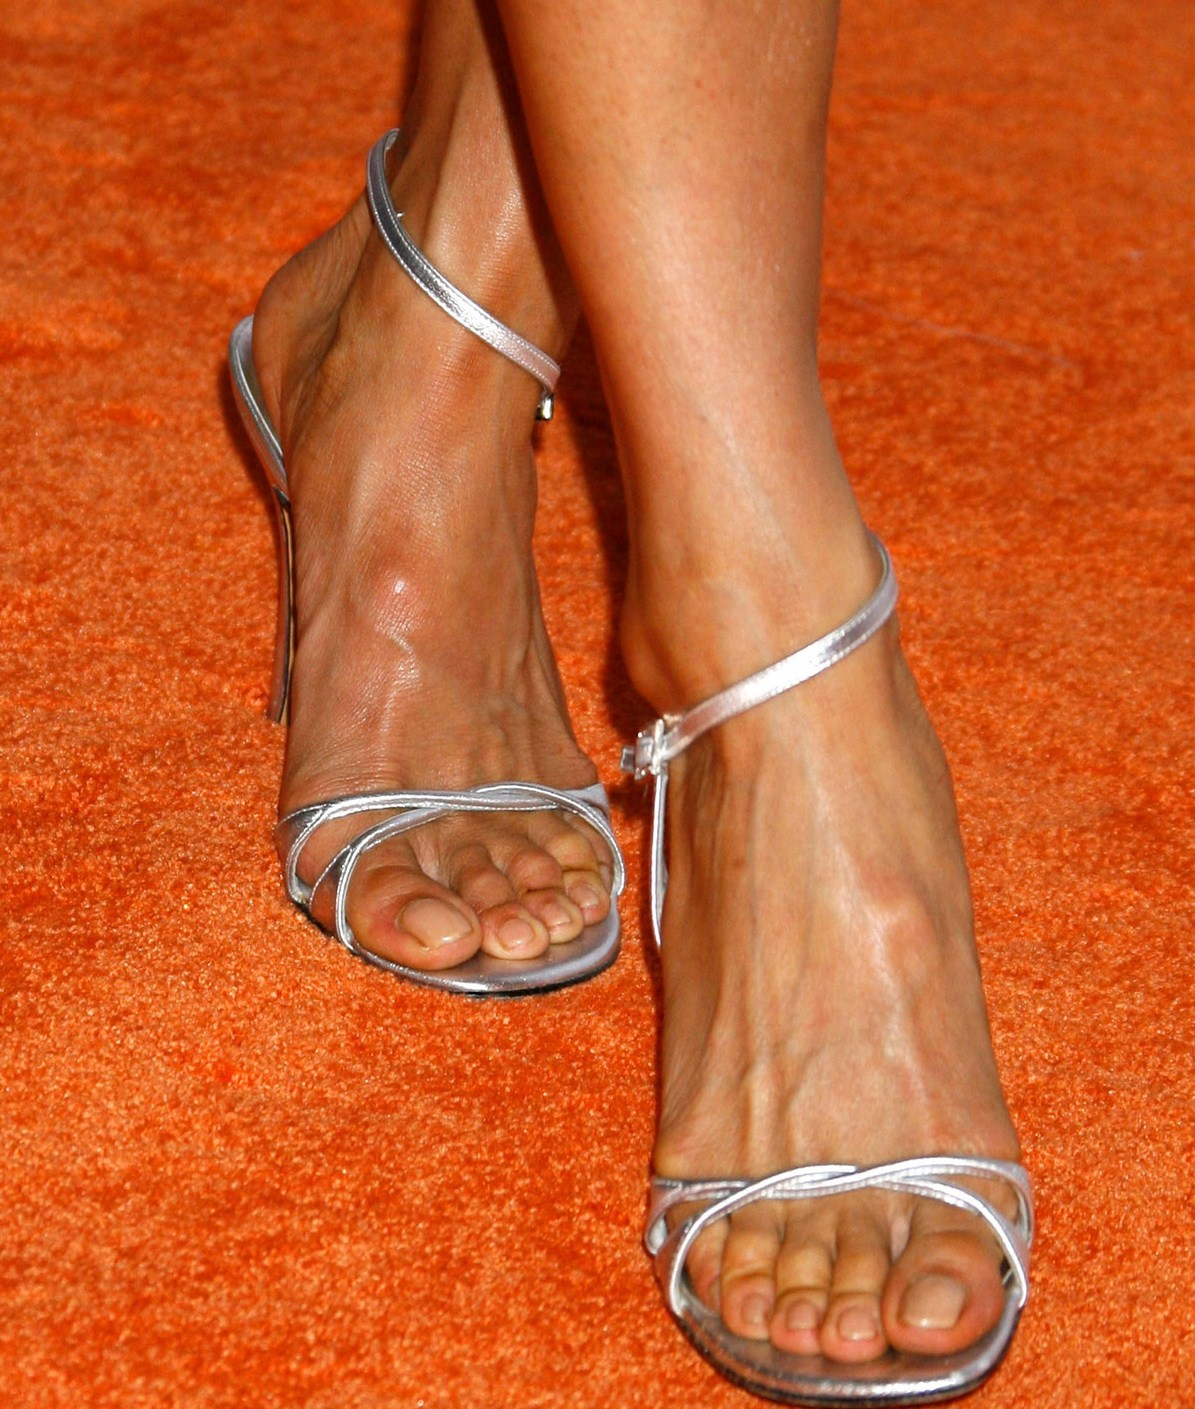 Halle beauty blog kelly hu feet voltagebd Images